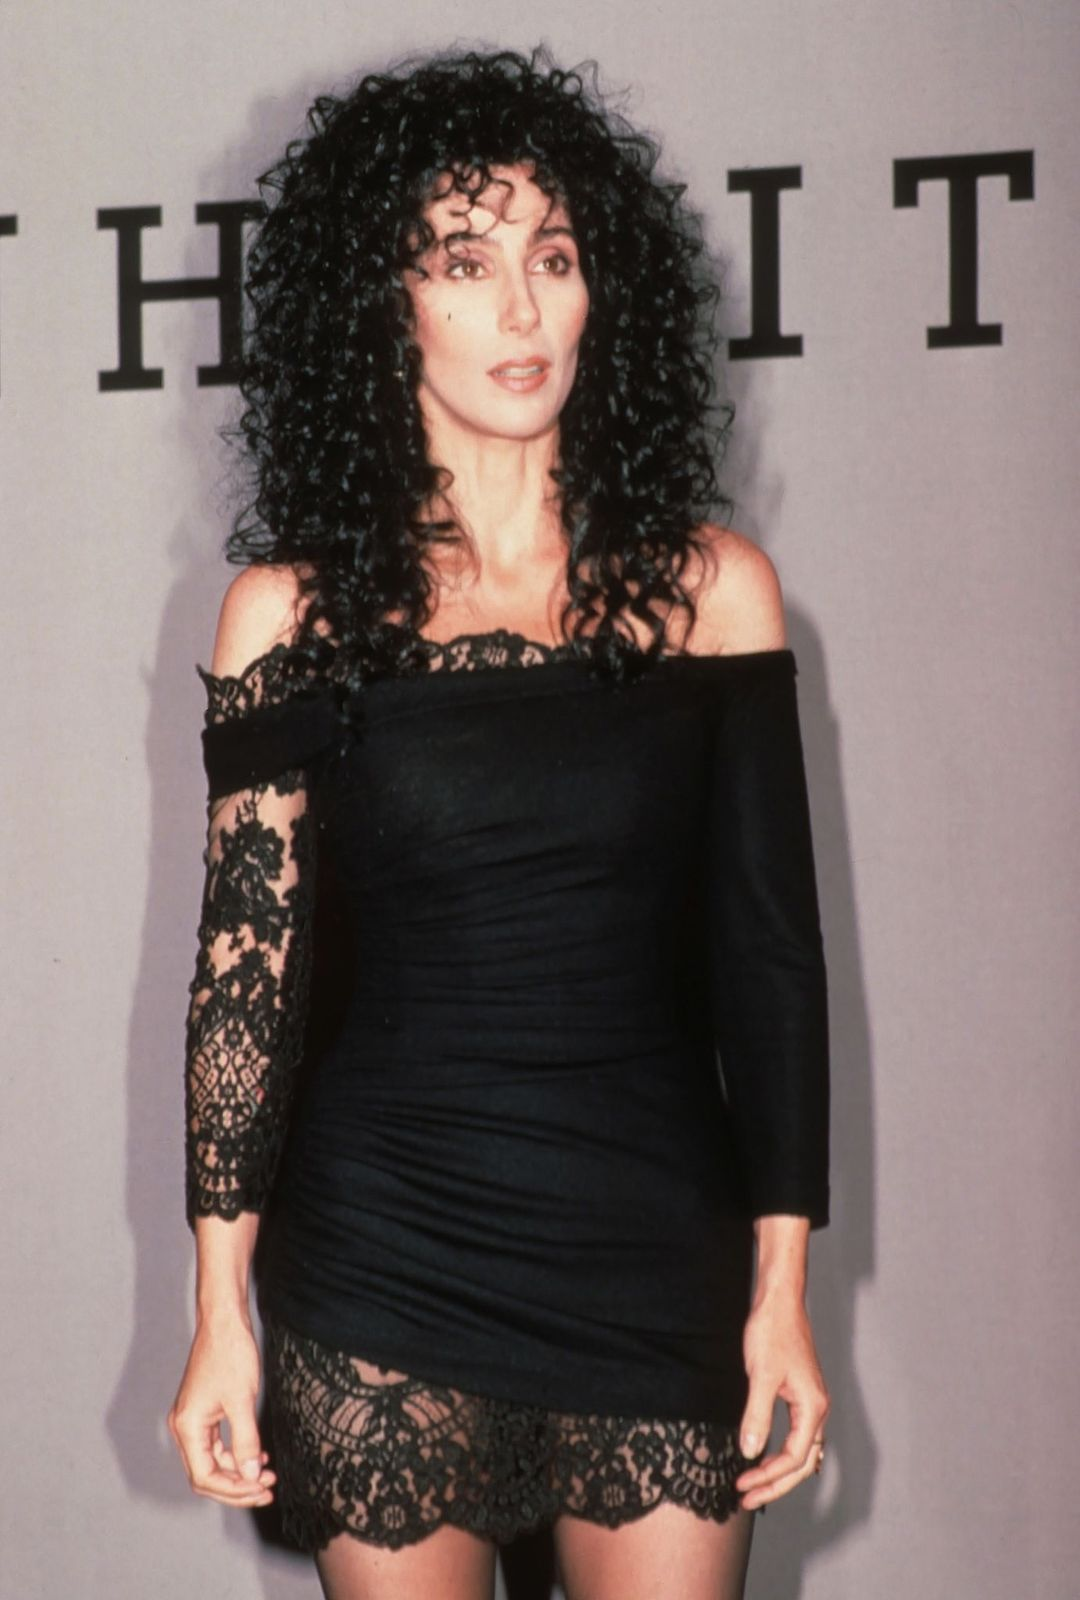 Cher at the launch of her fragrance Uninhibited at The Plaza Hotel on August 10, 1988, in New York City | Photo: Robin Platzer/Images/Getty Images